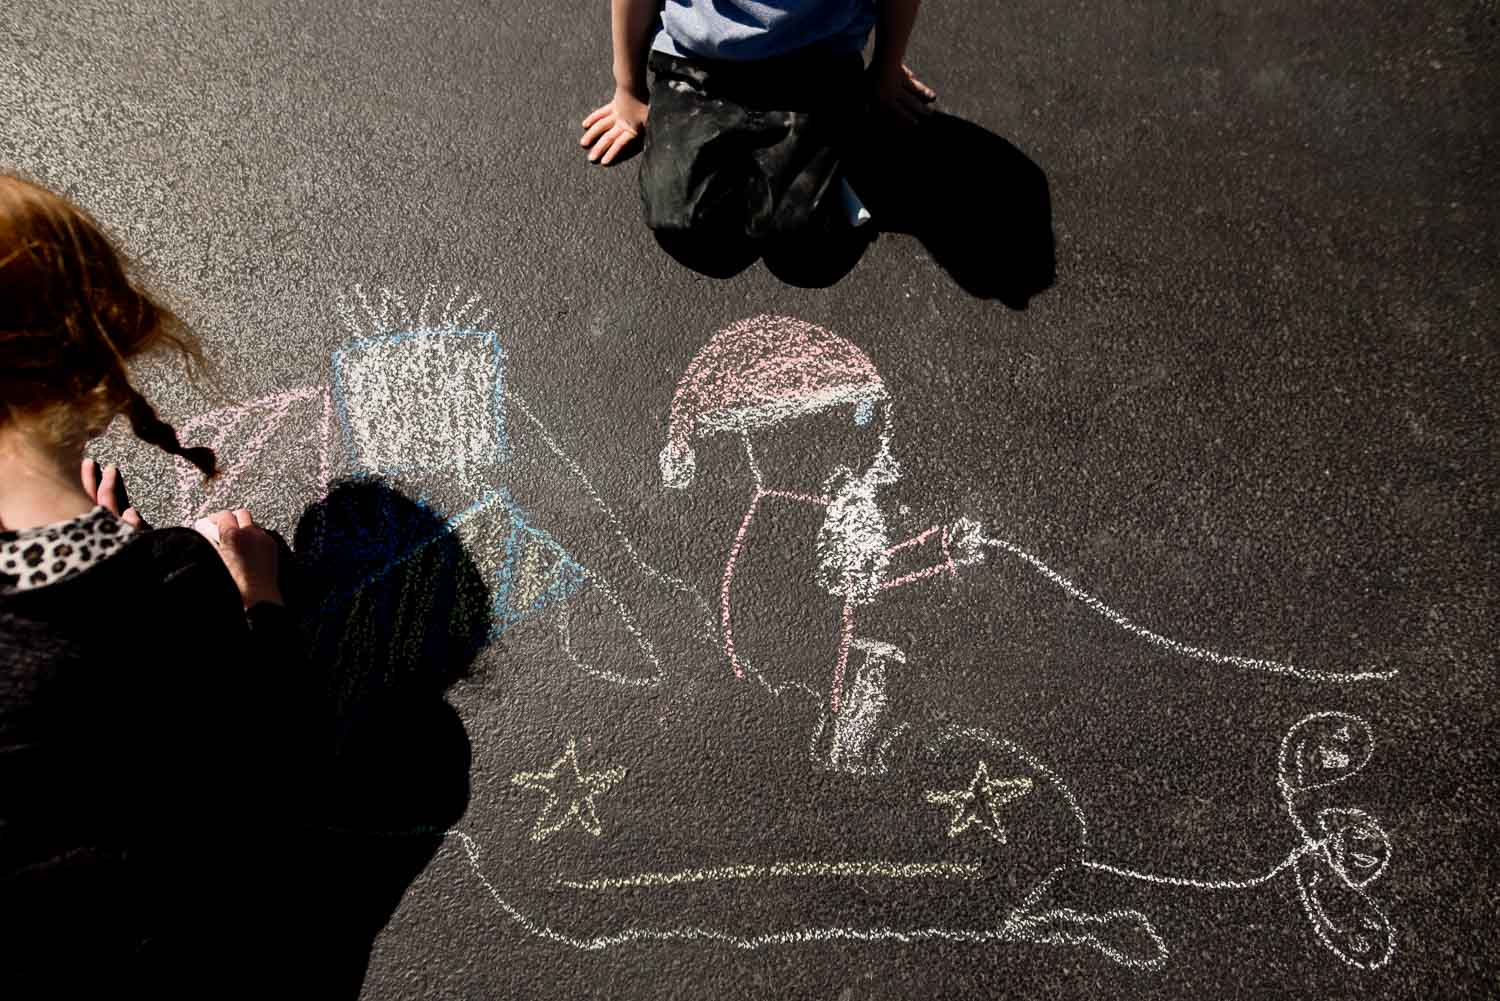 Shadow tracing art activity for kids turns into Santa sleigh